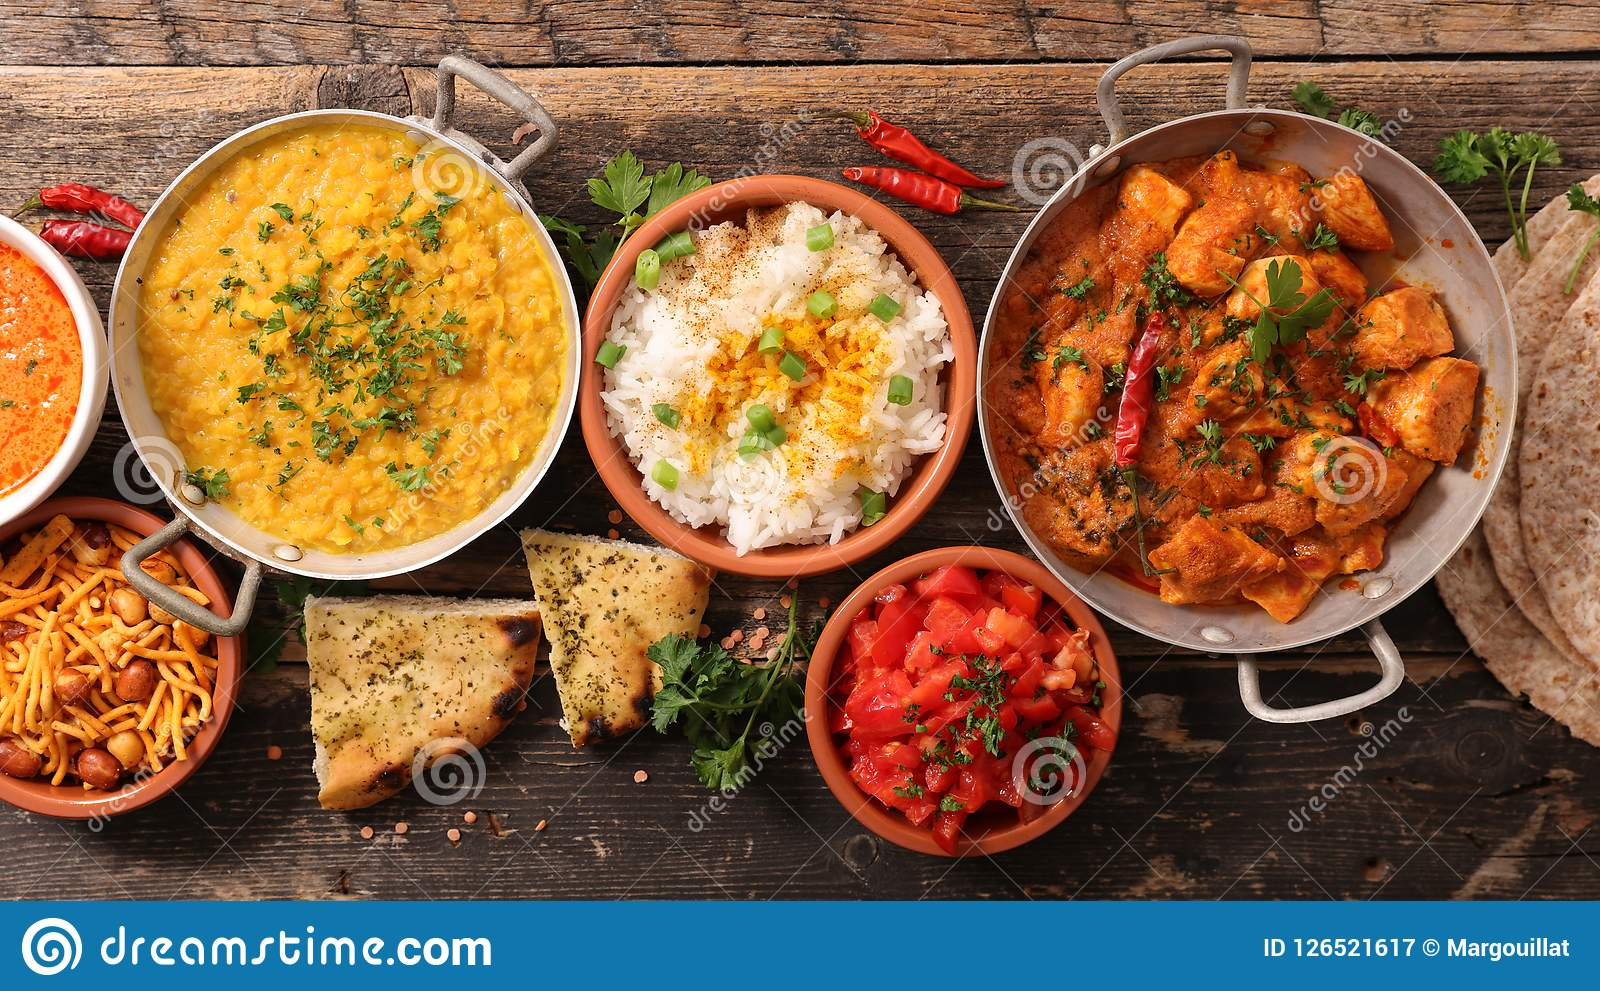 Cuisine India Assorted India Food Cuisine Stock Image Image Of Chicken Tomato